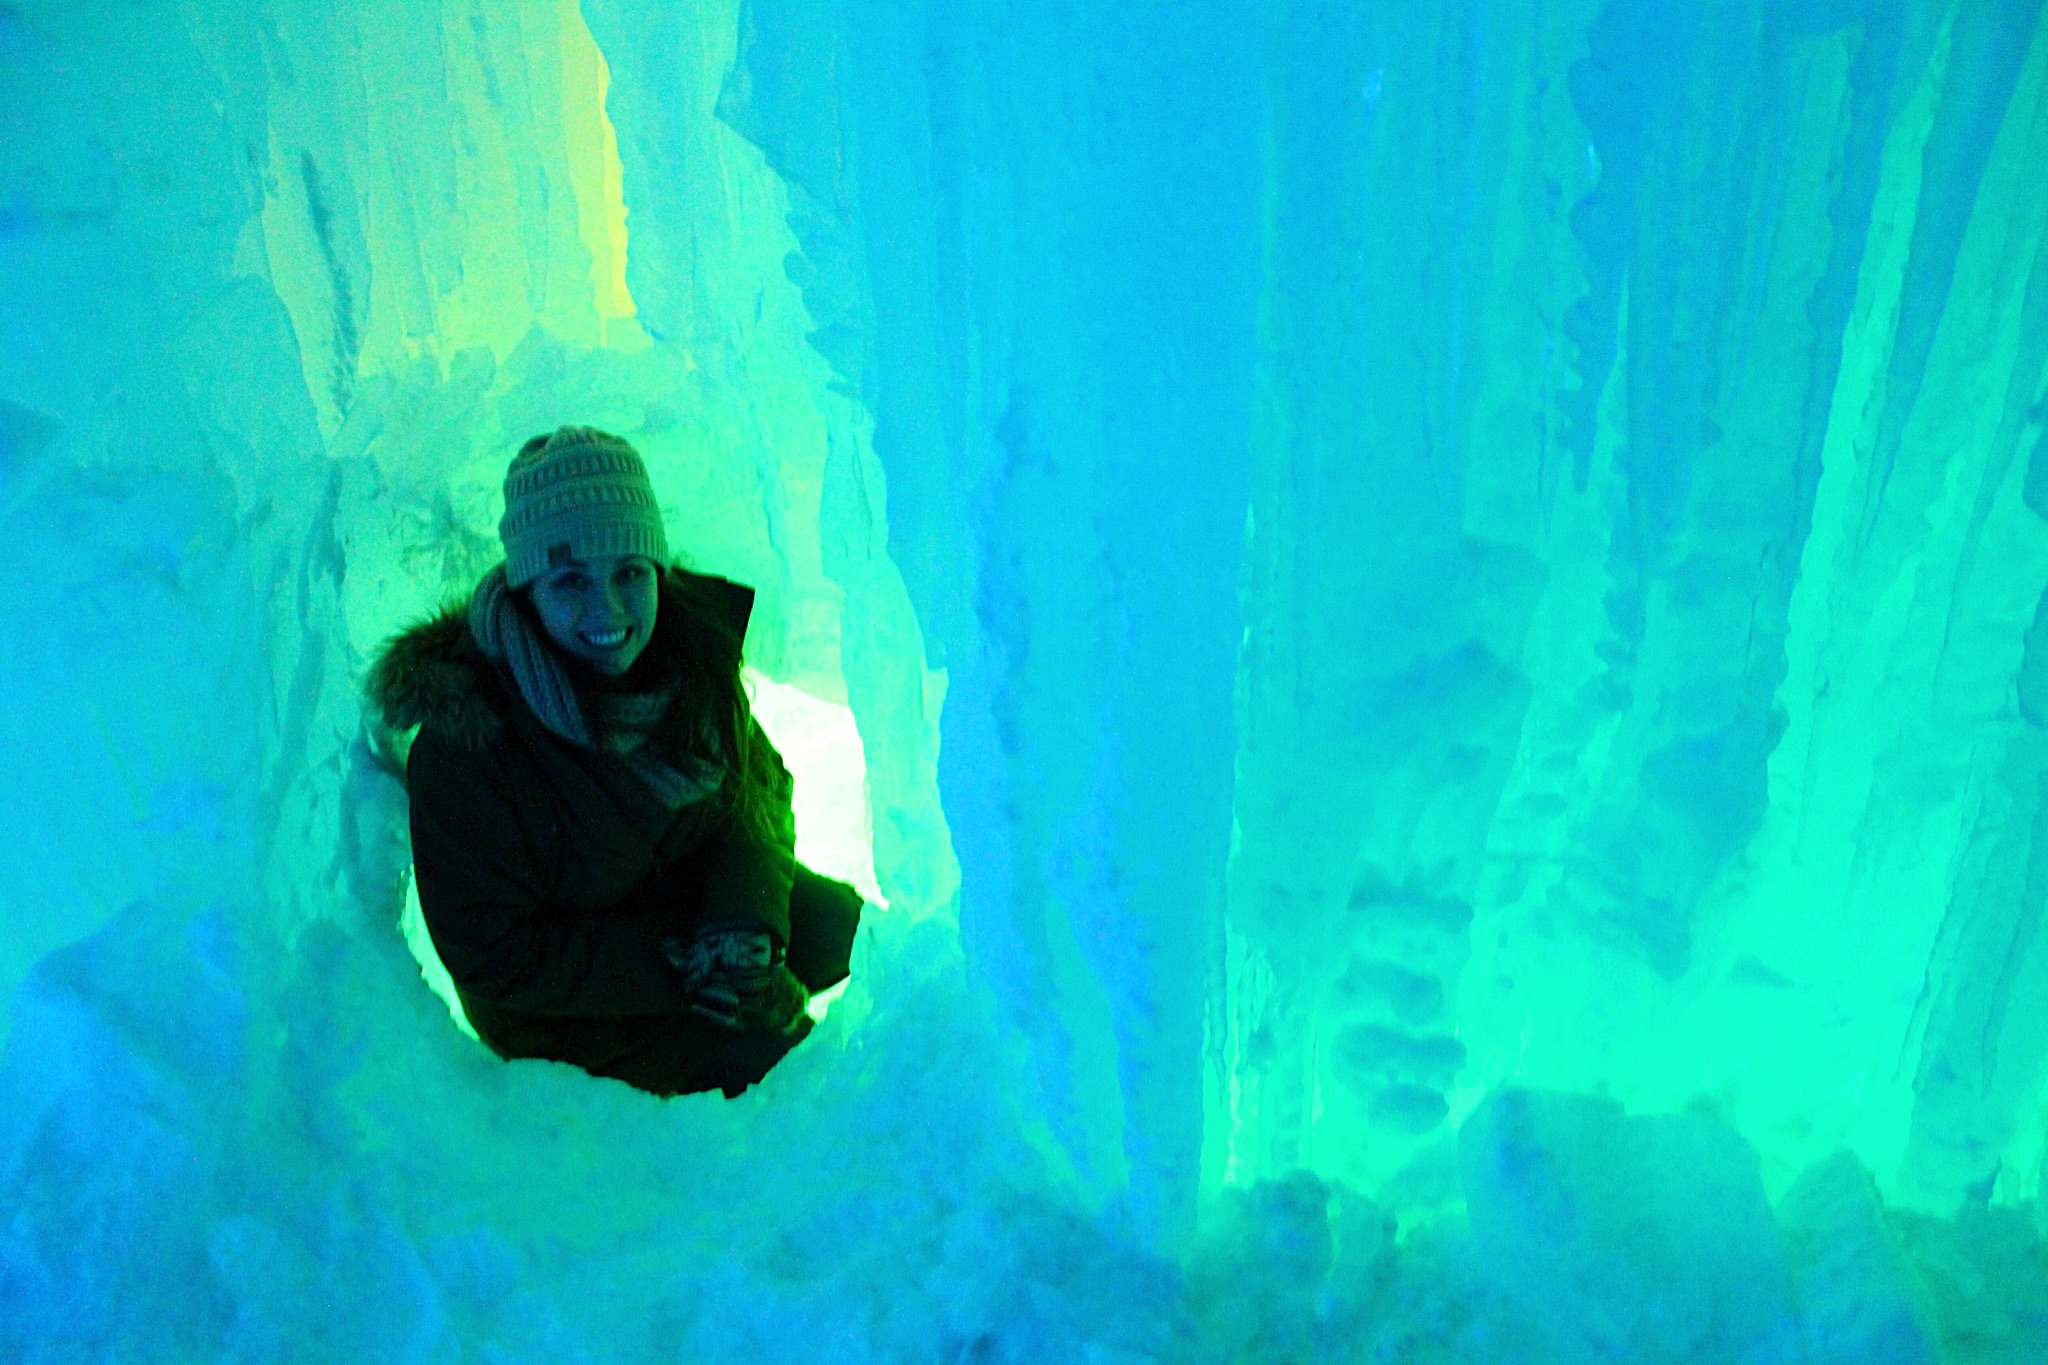 ice-castle-dillon.jpg